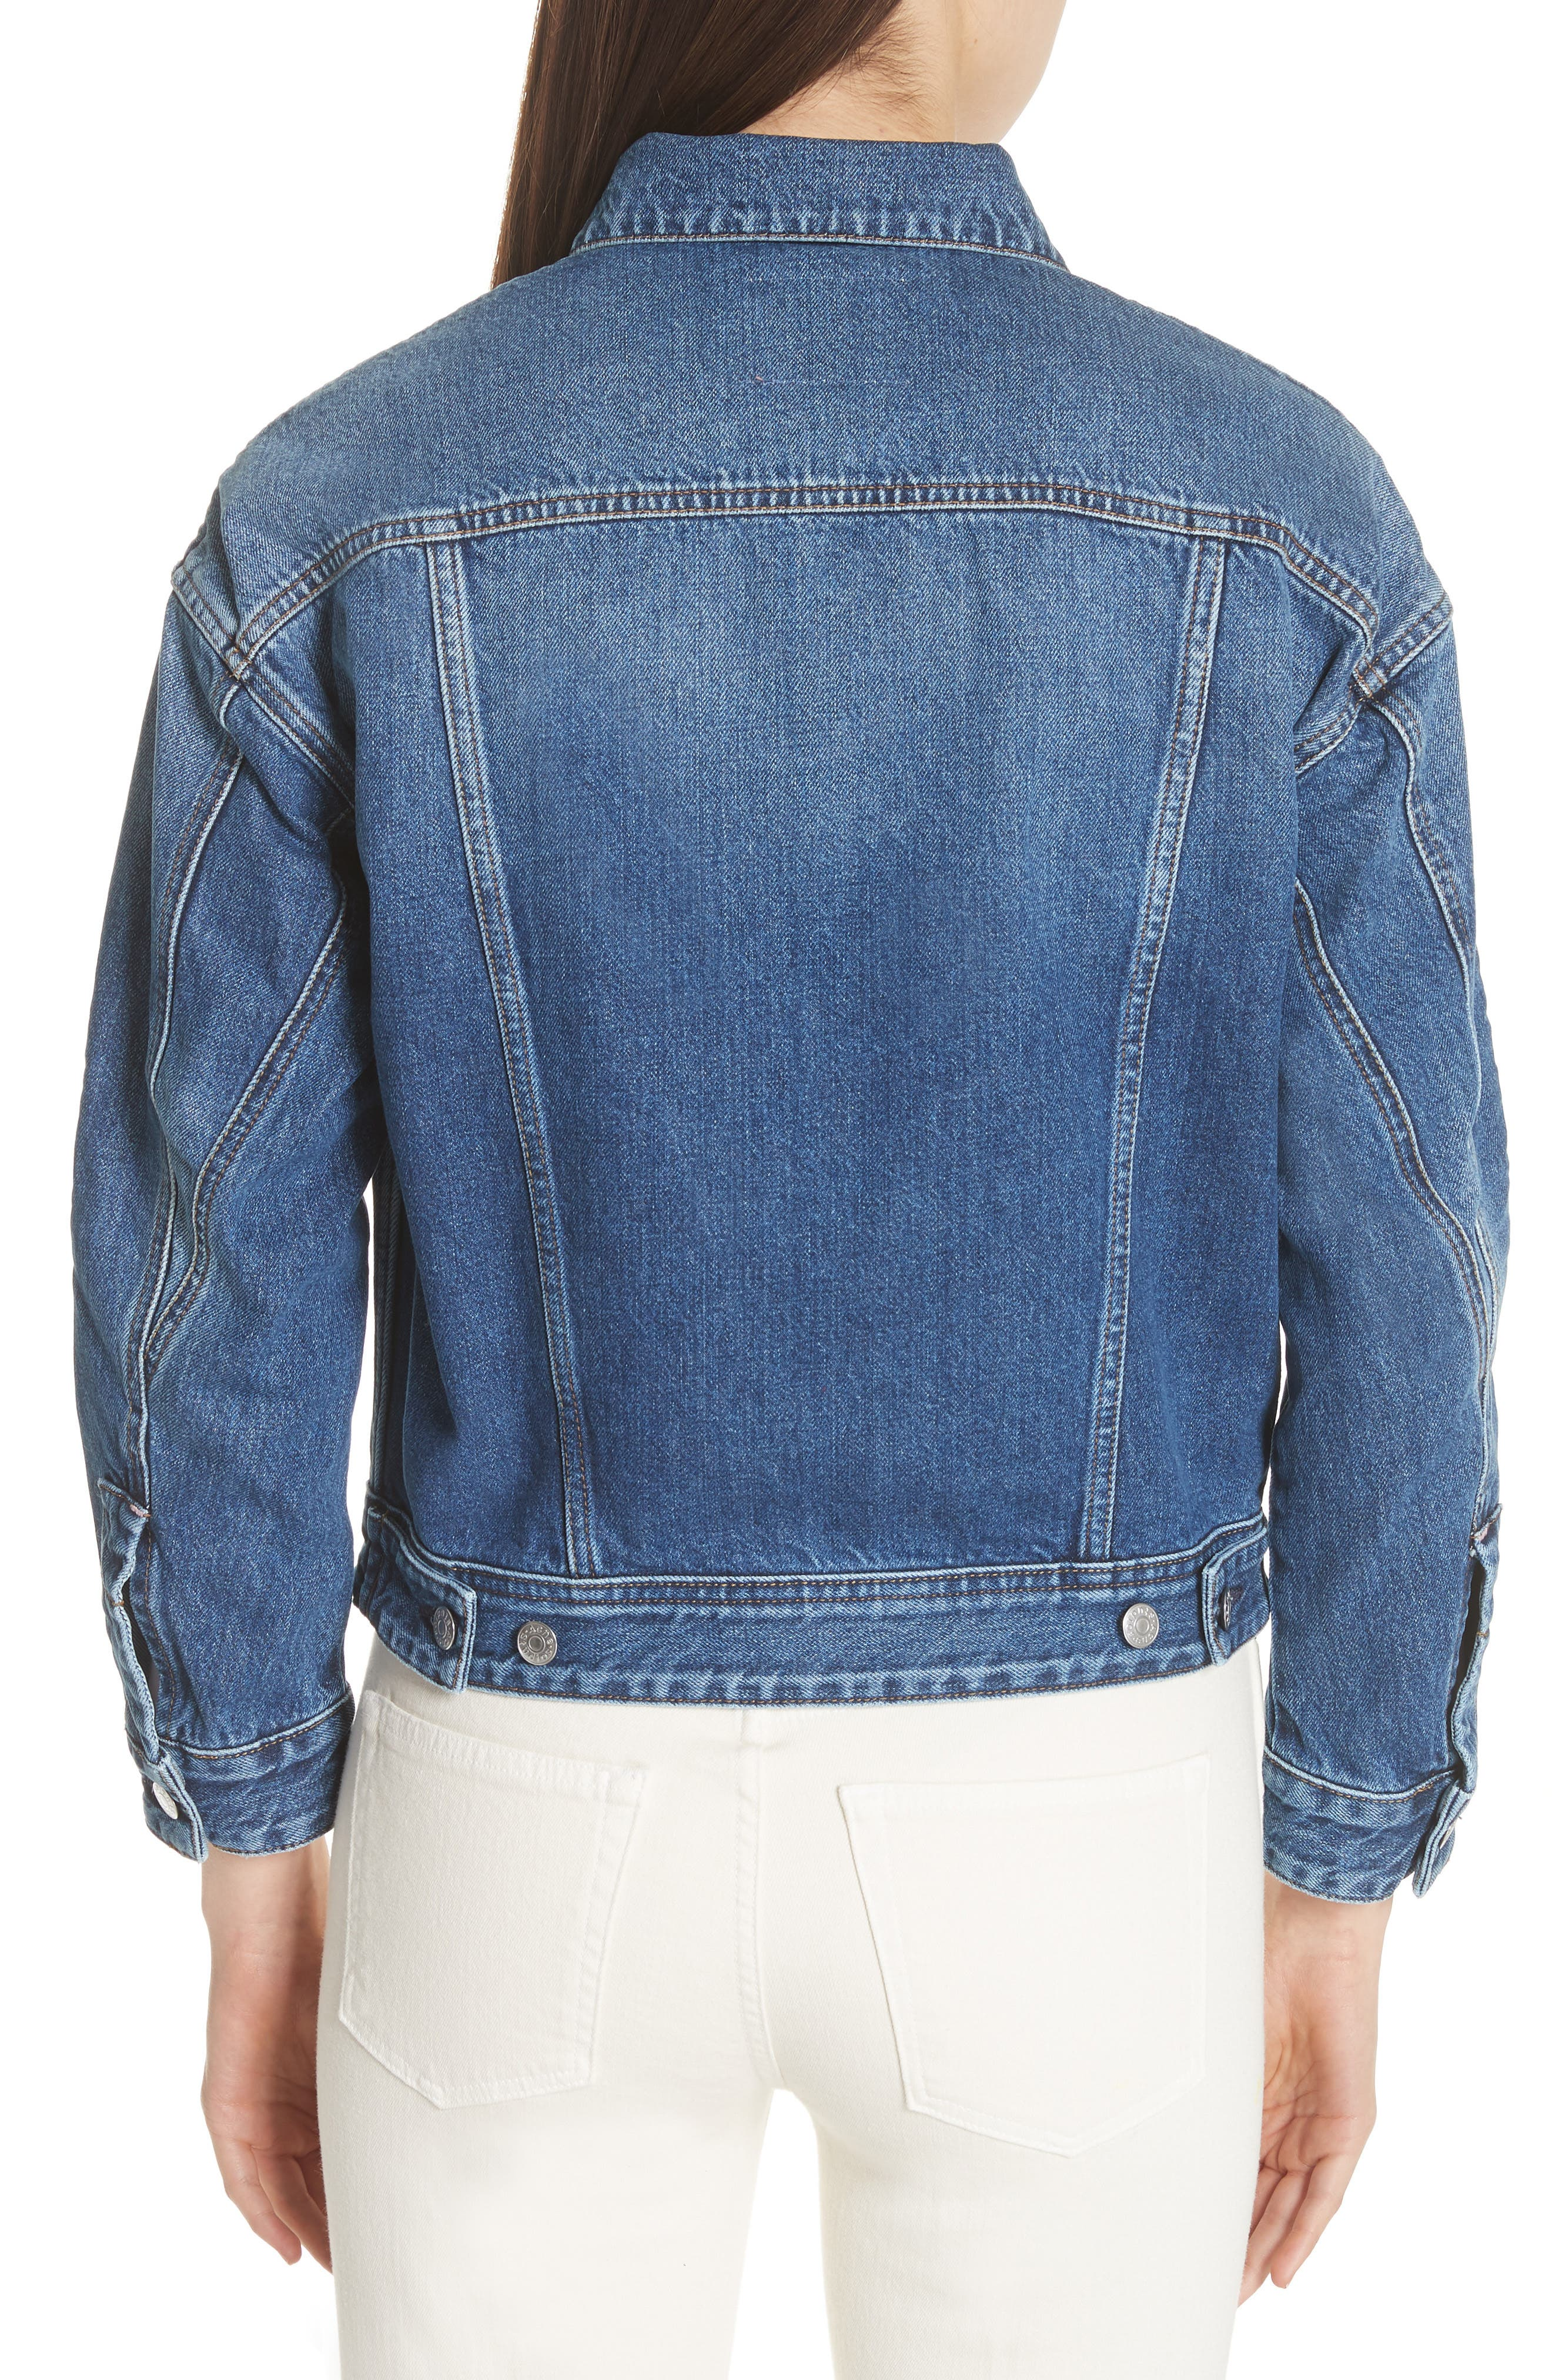 Lamp Denim Jacket,                             Alternate thumbnail 2, color,                             400